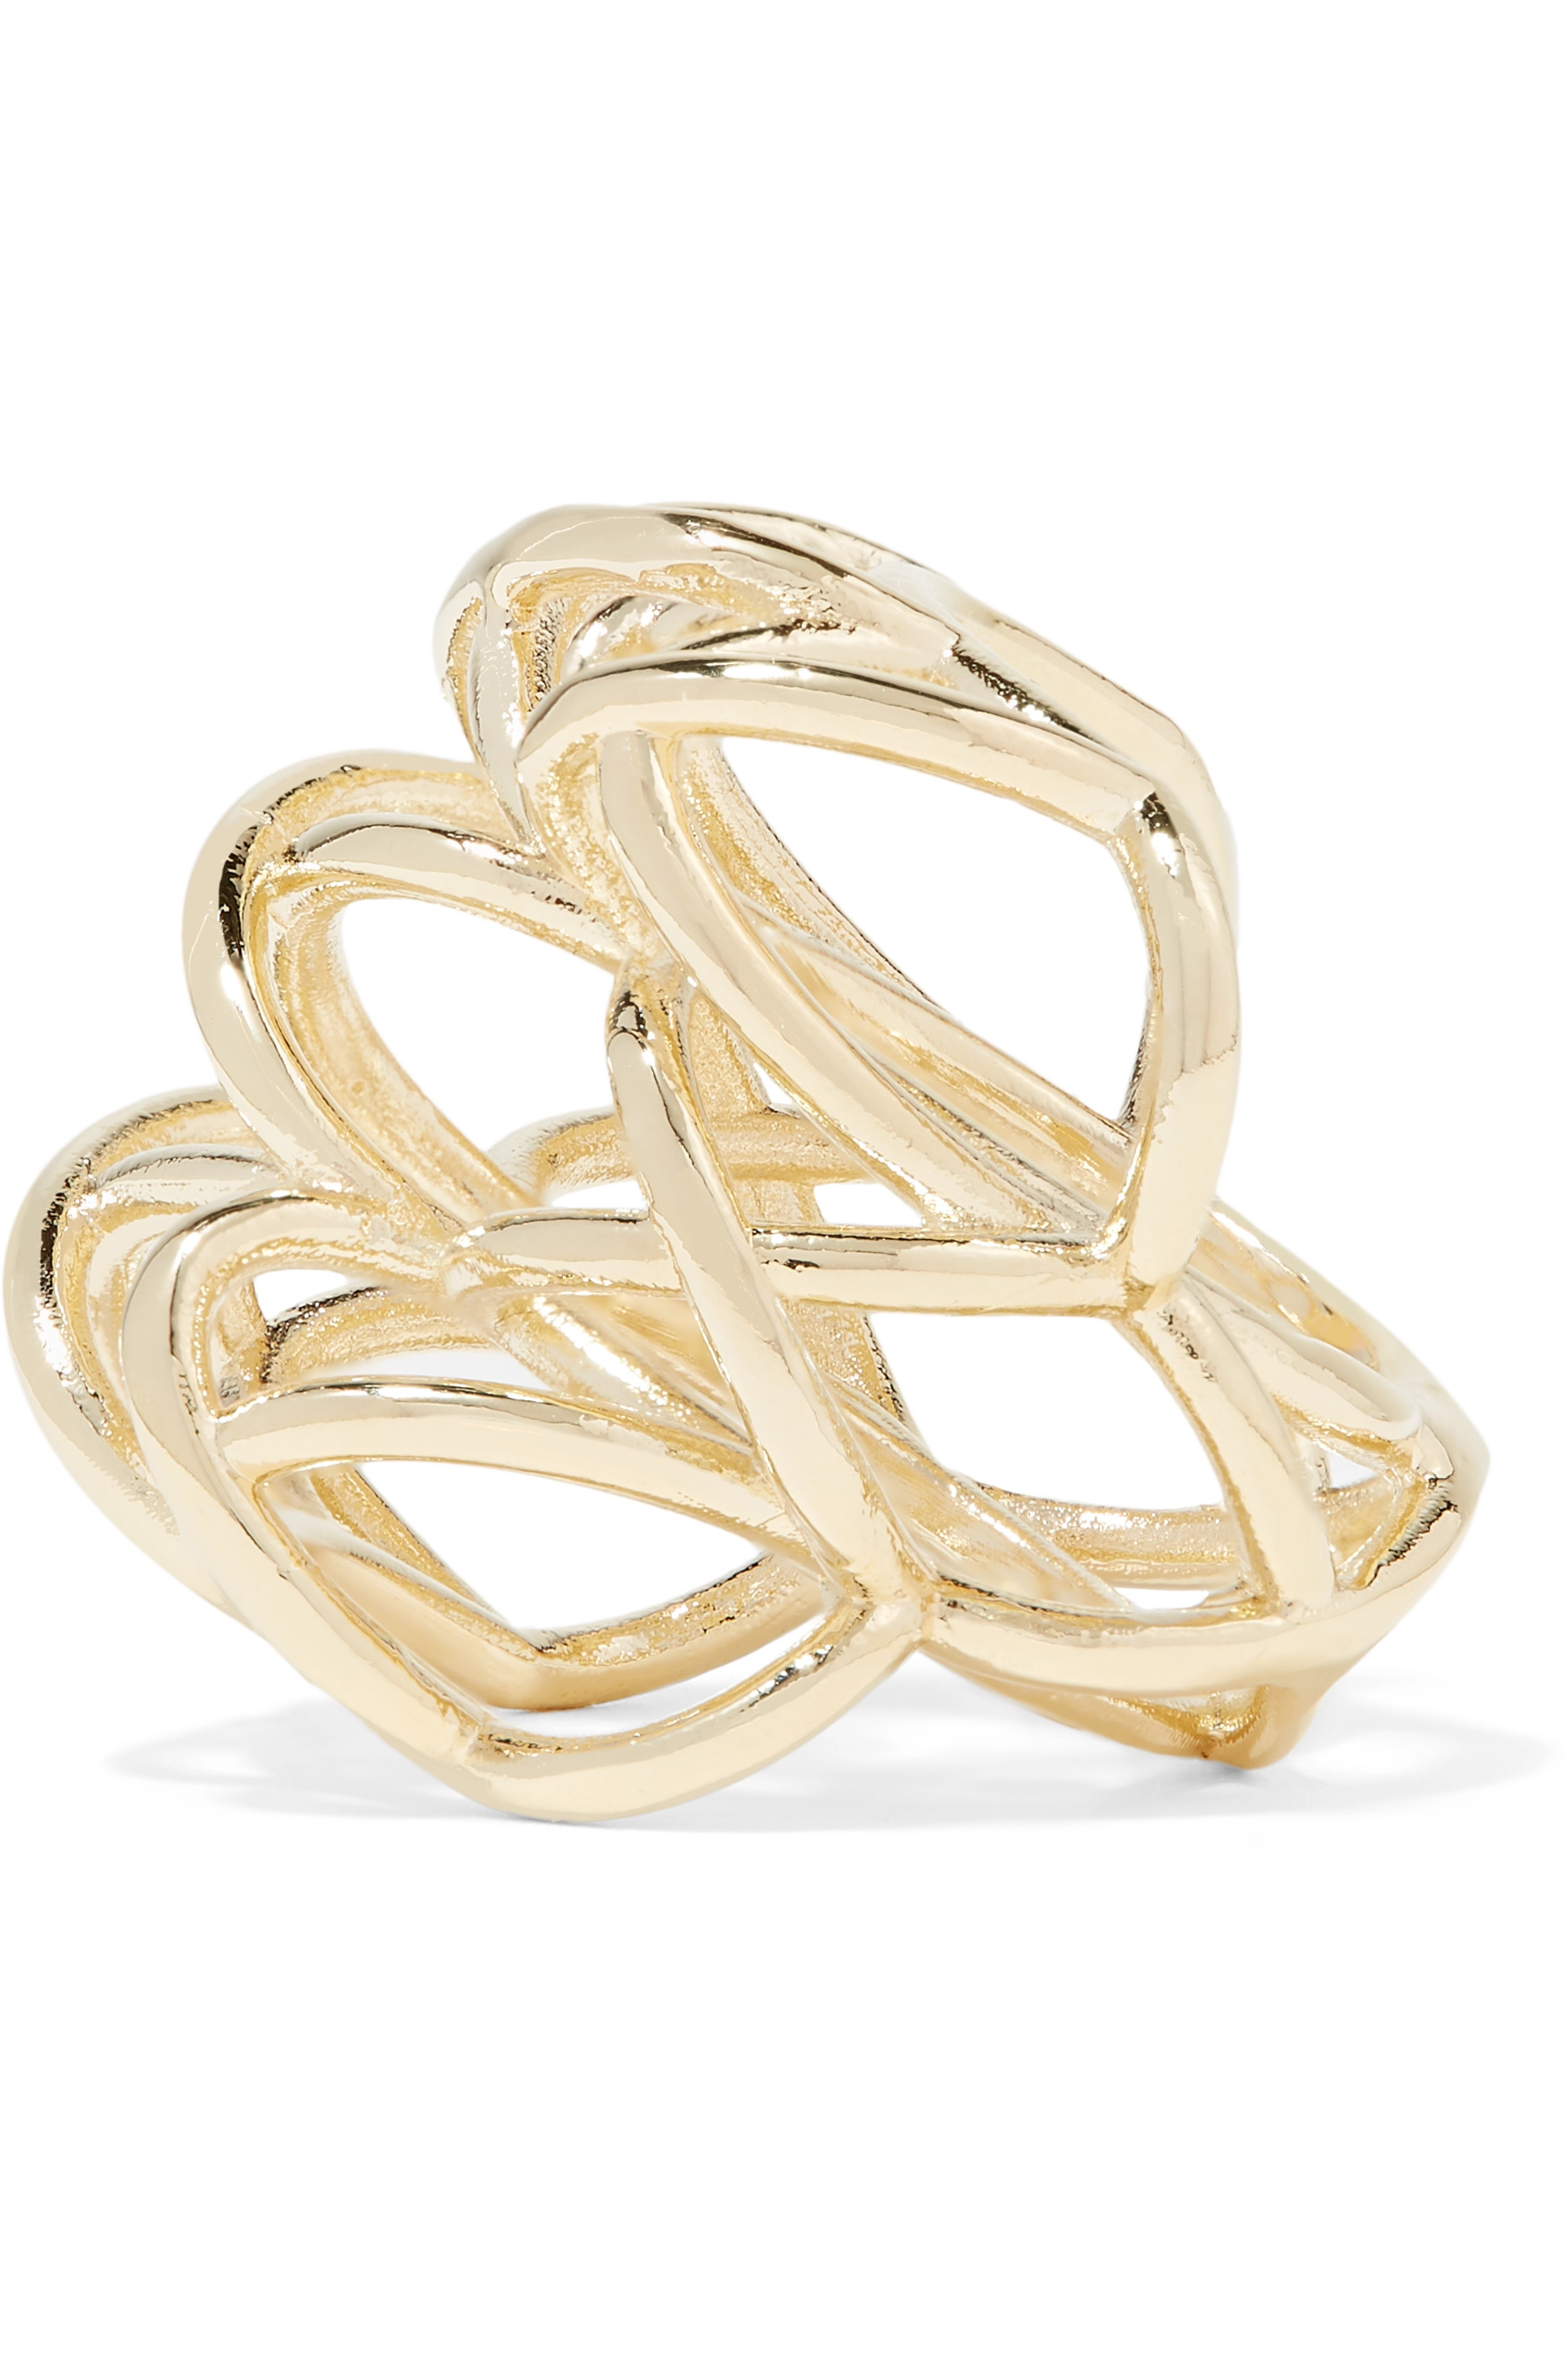 Jennifer Fisher Lace Up gold-plated ring